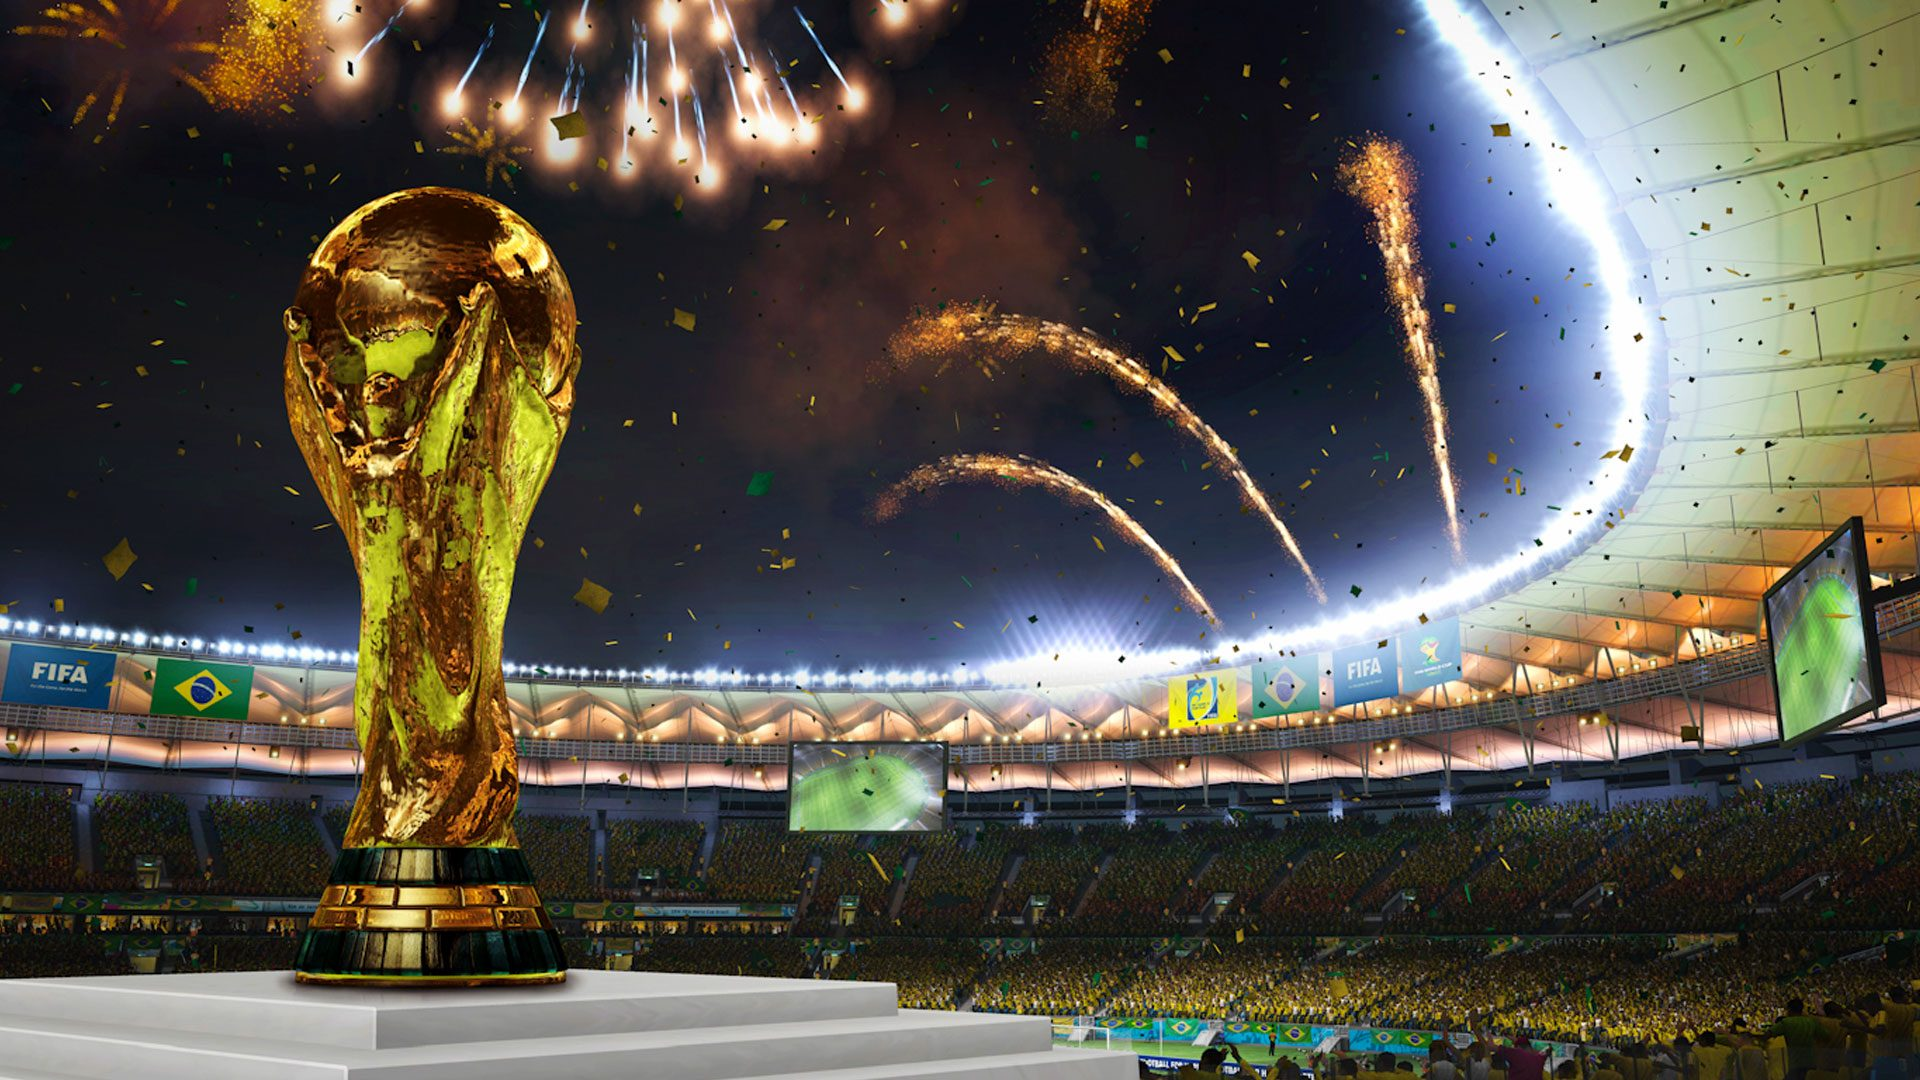 fifa world cup Follow all the latest fifa world cup football news, fixtures, stats, and more on espn.